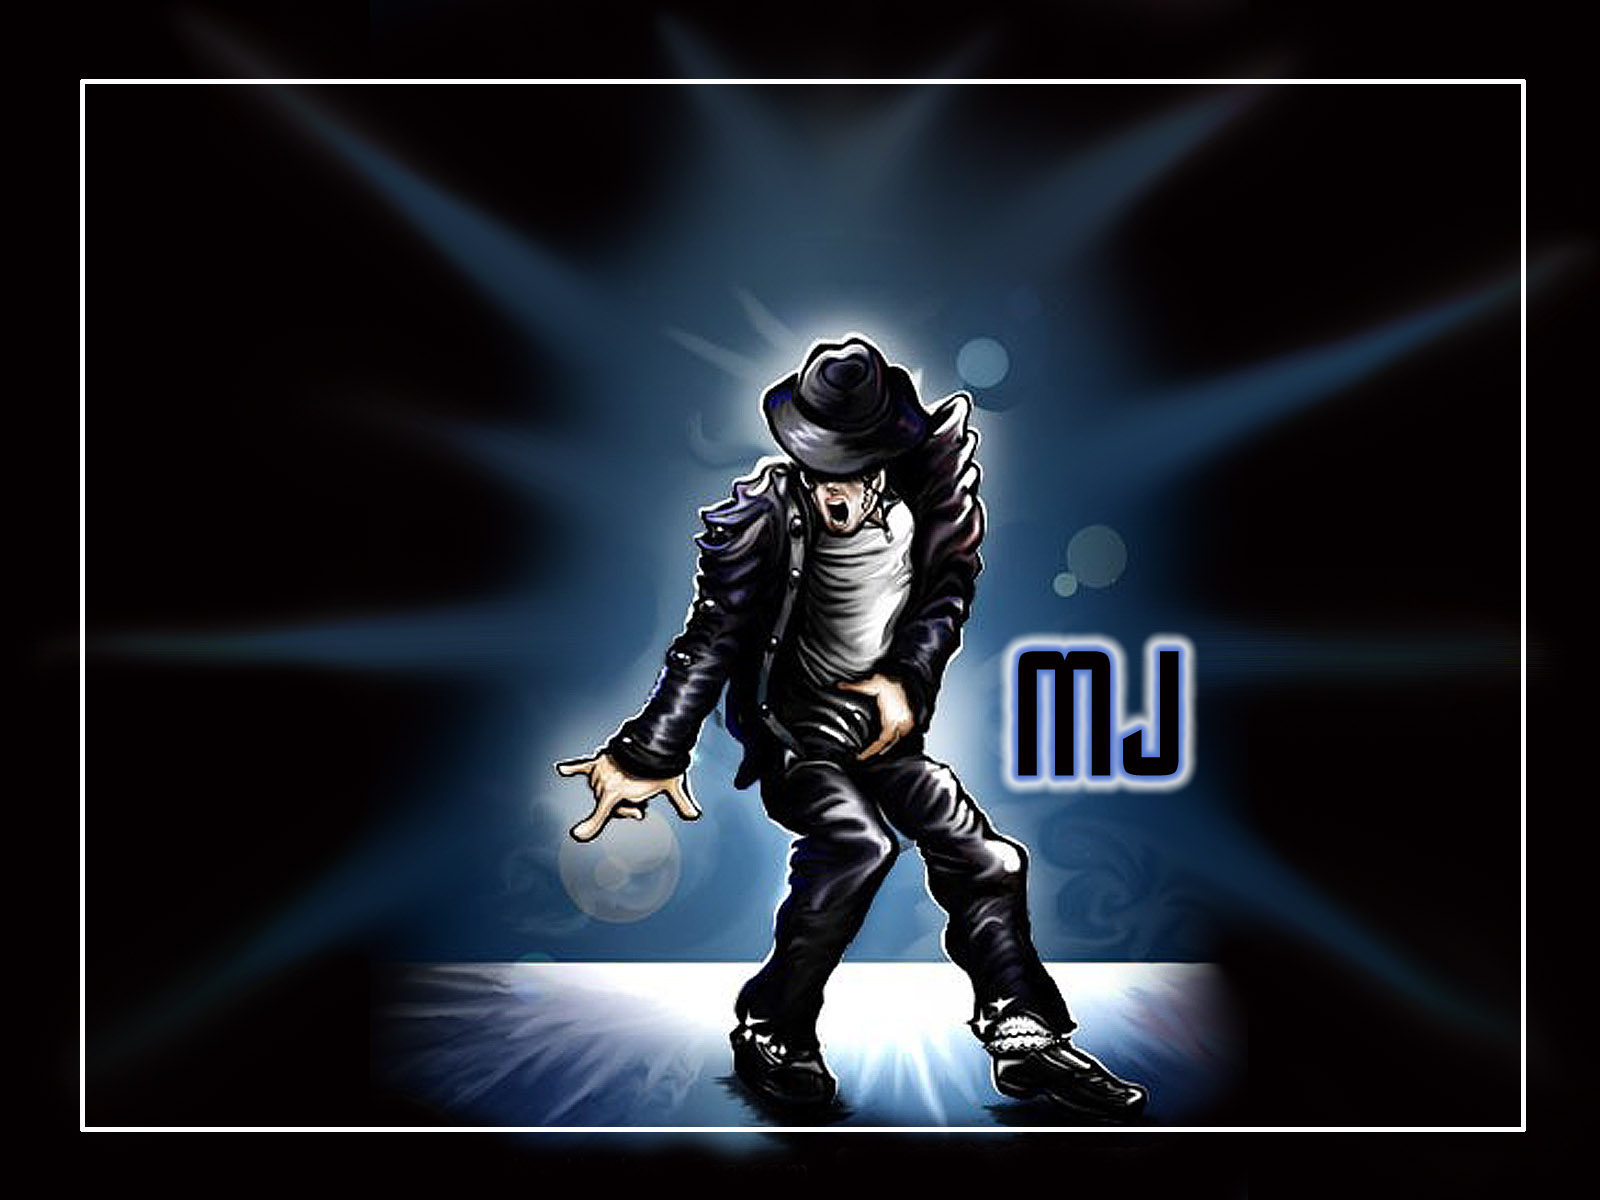 Iphone Wallpaper Michael Jackson Mj Toon Wallpapers Mj Toon Stock Photos